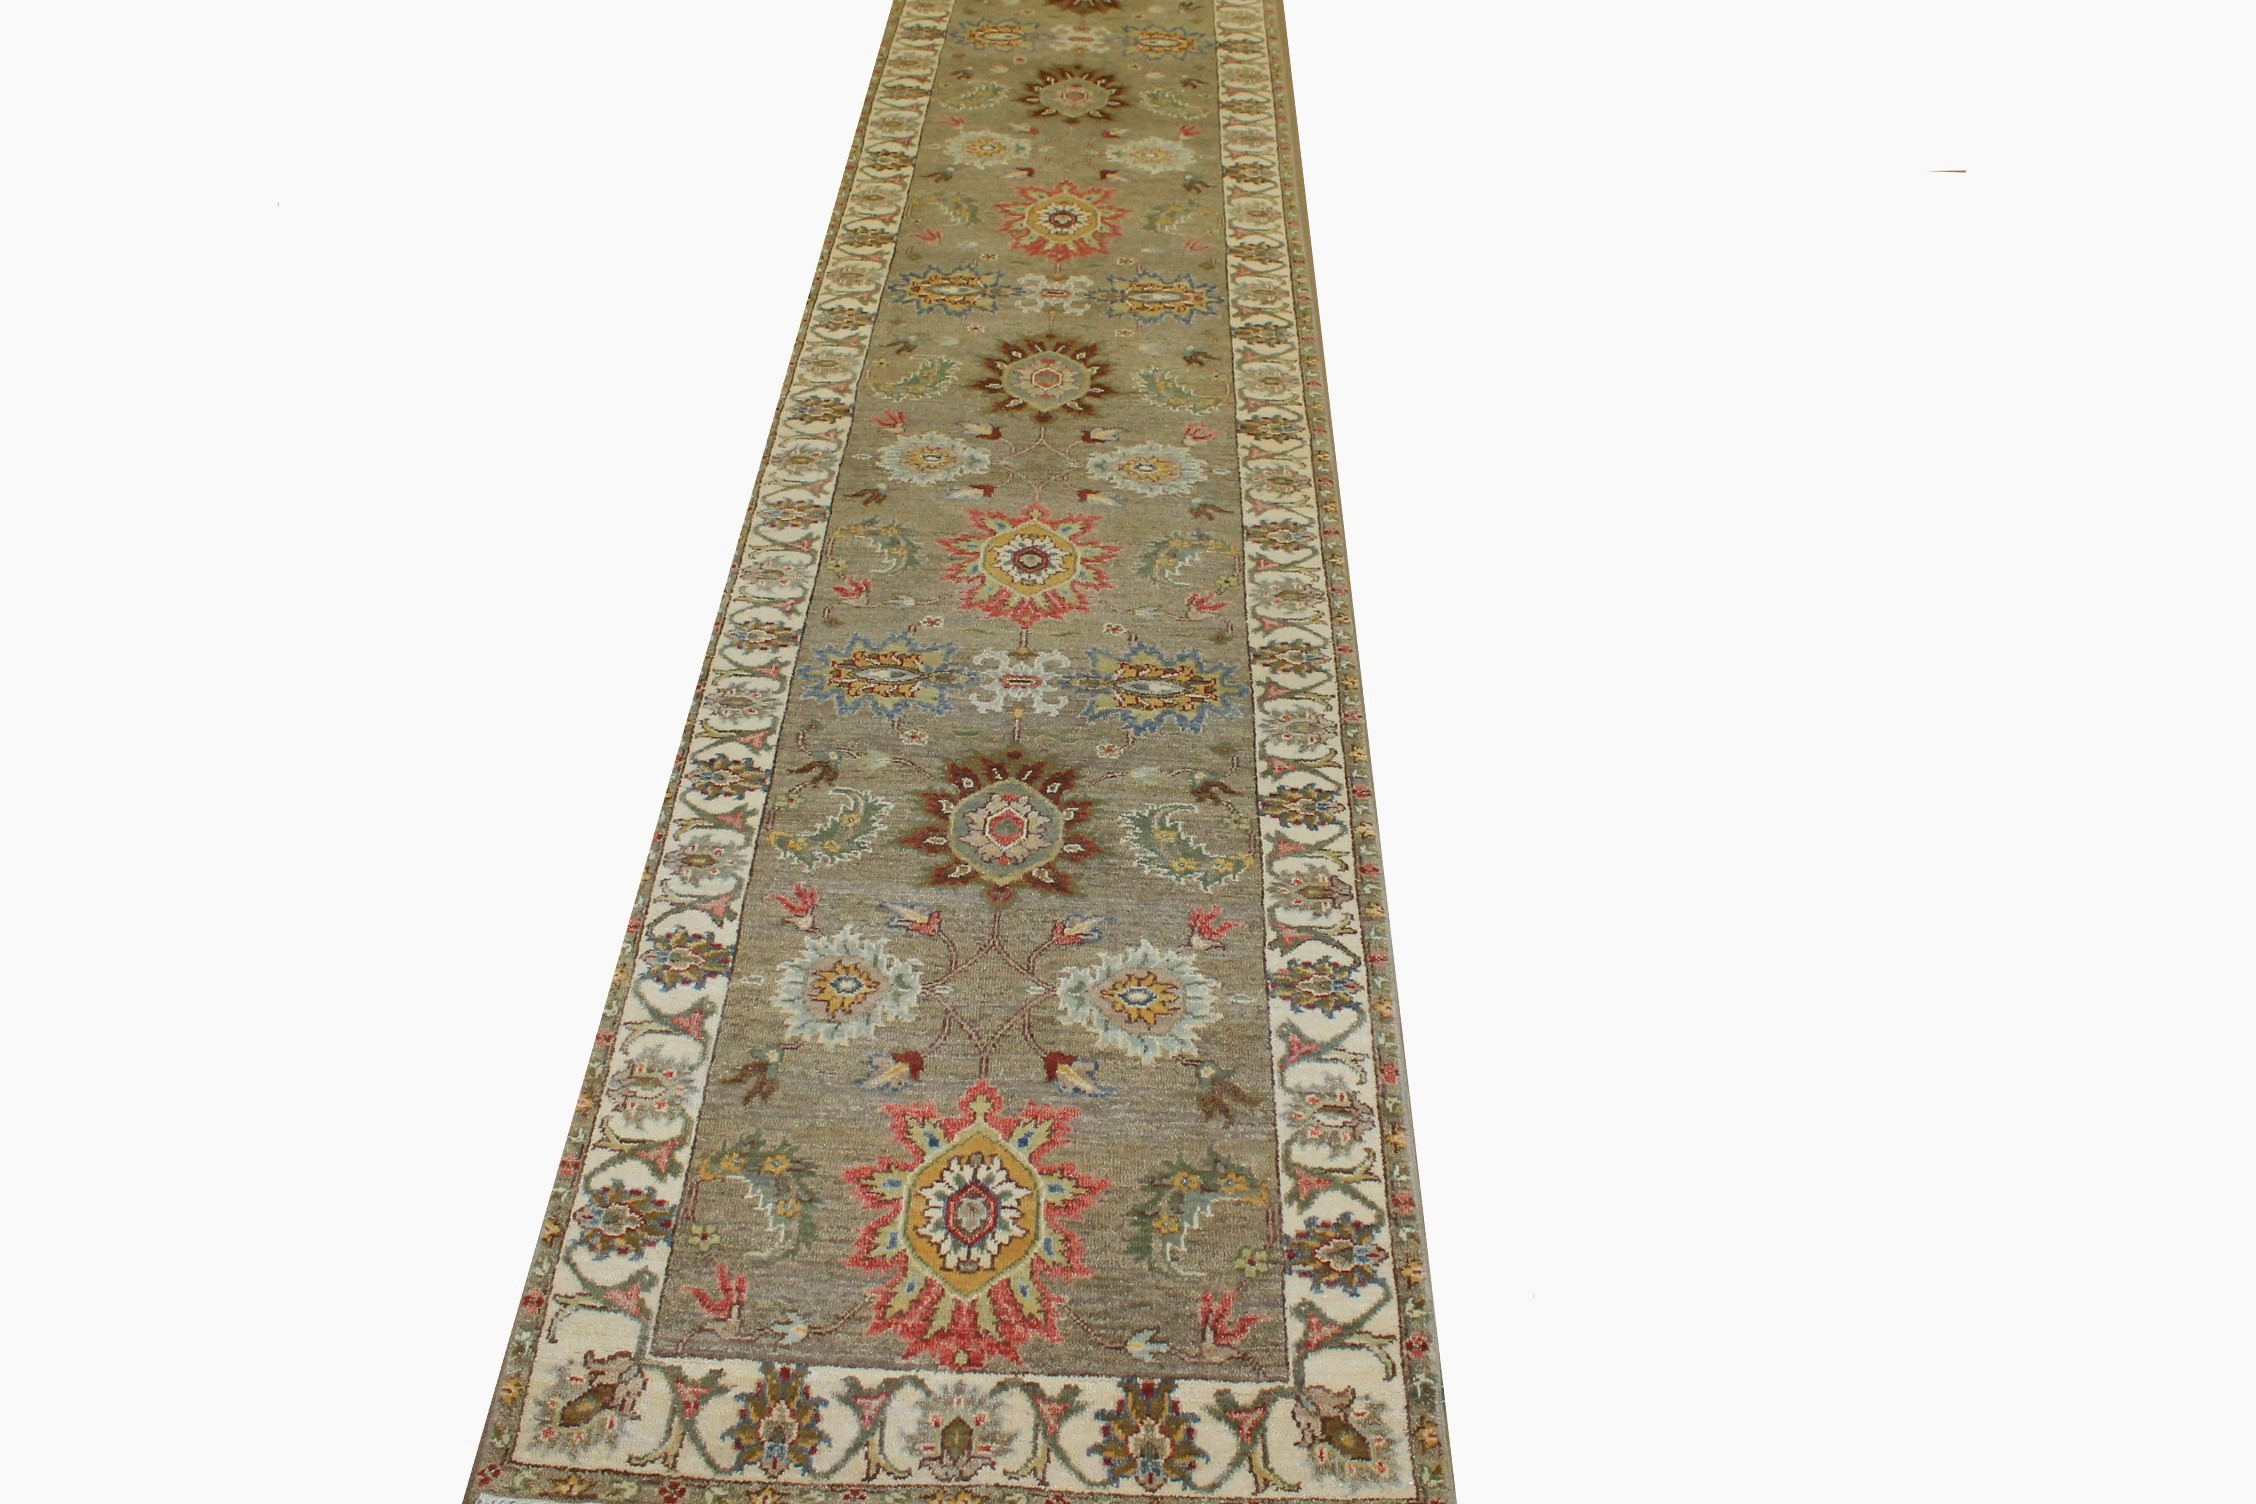 13 ft. & Longer Runner Traditional Hand Knotted Wool Area Rug - MR025223